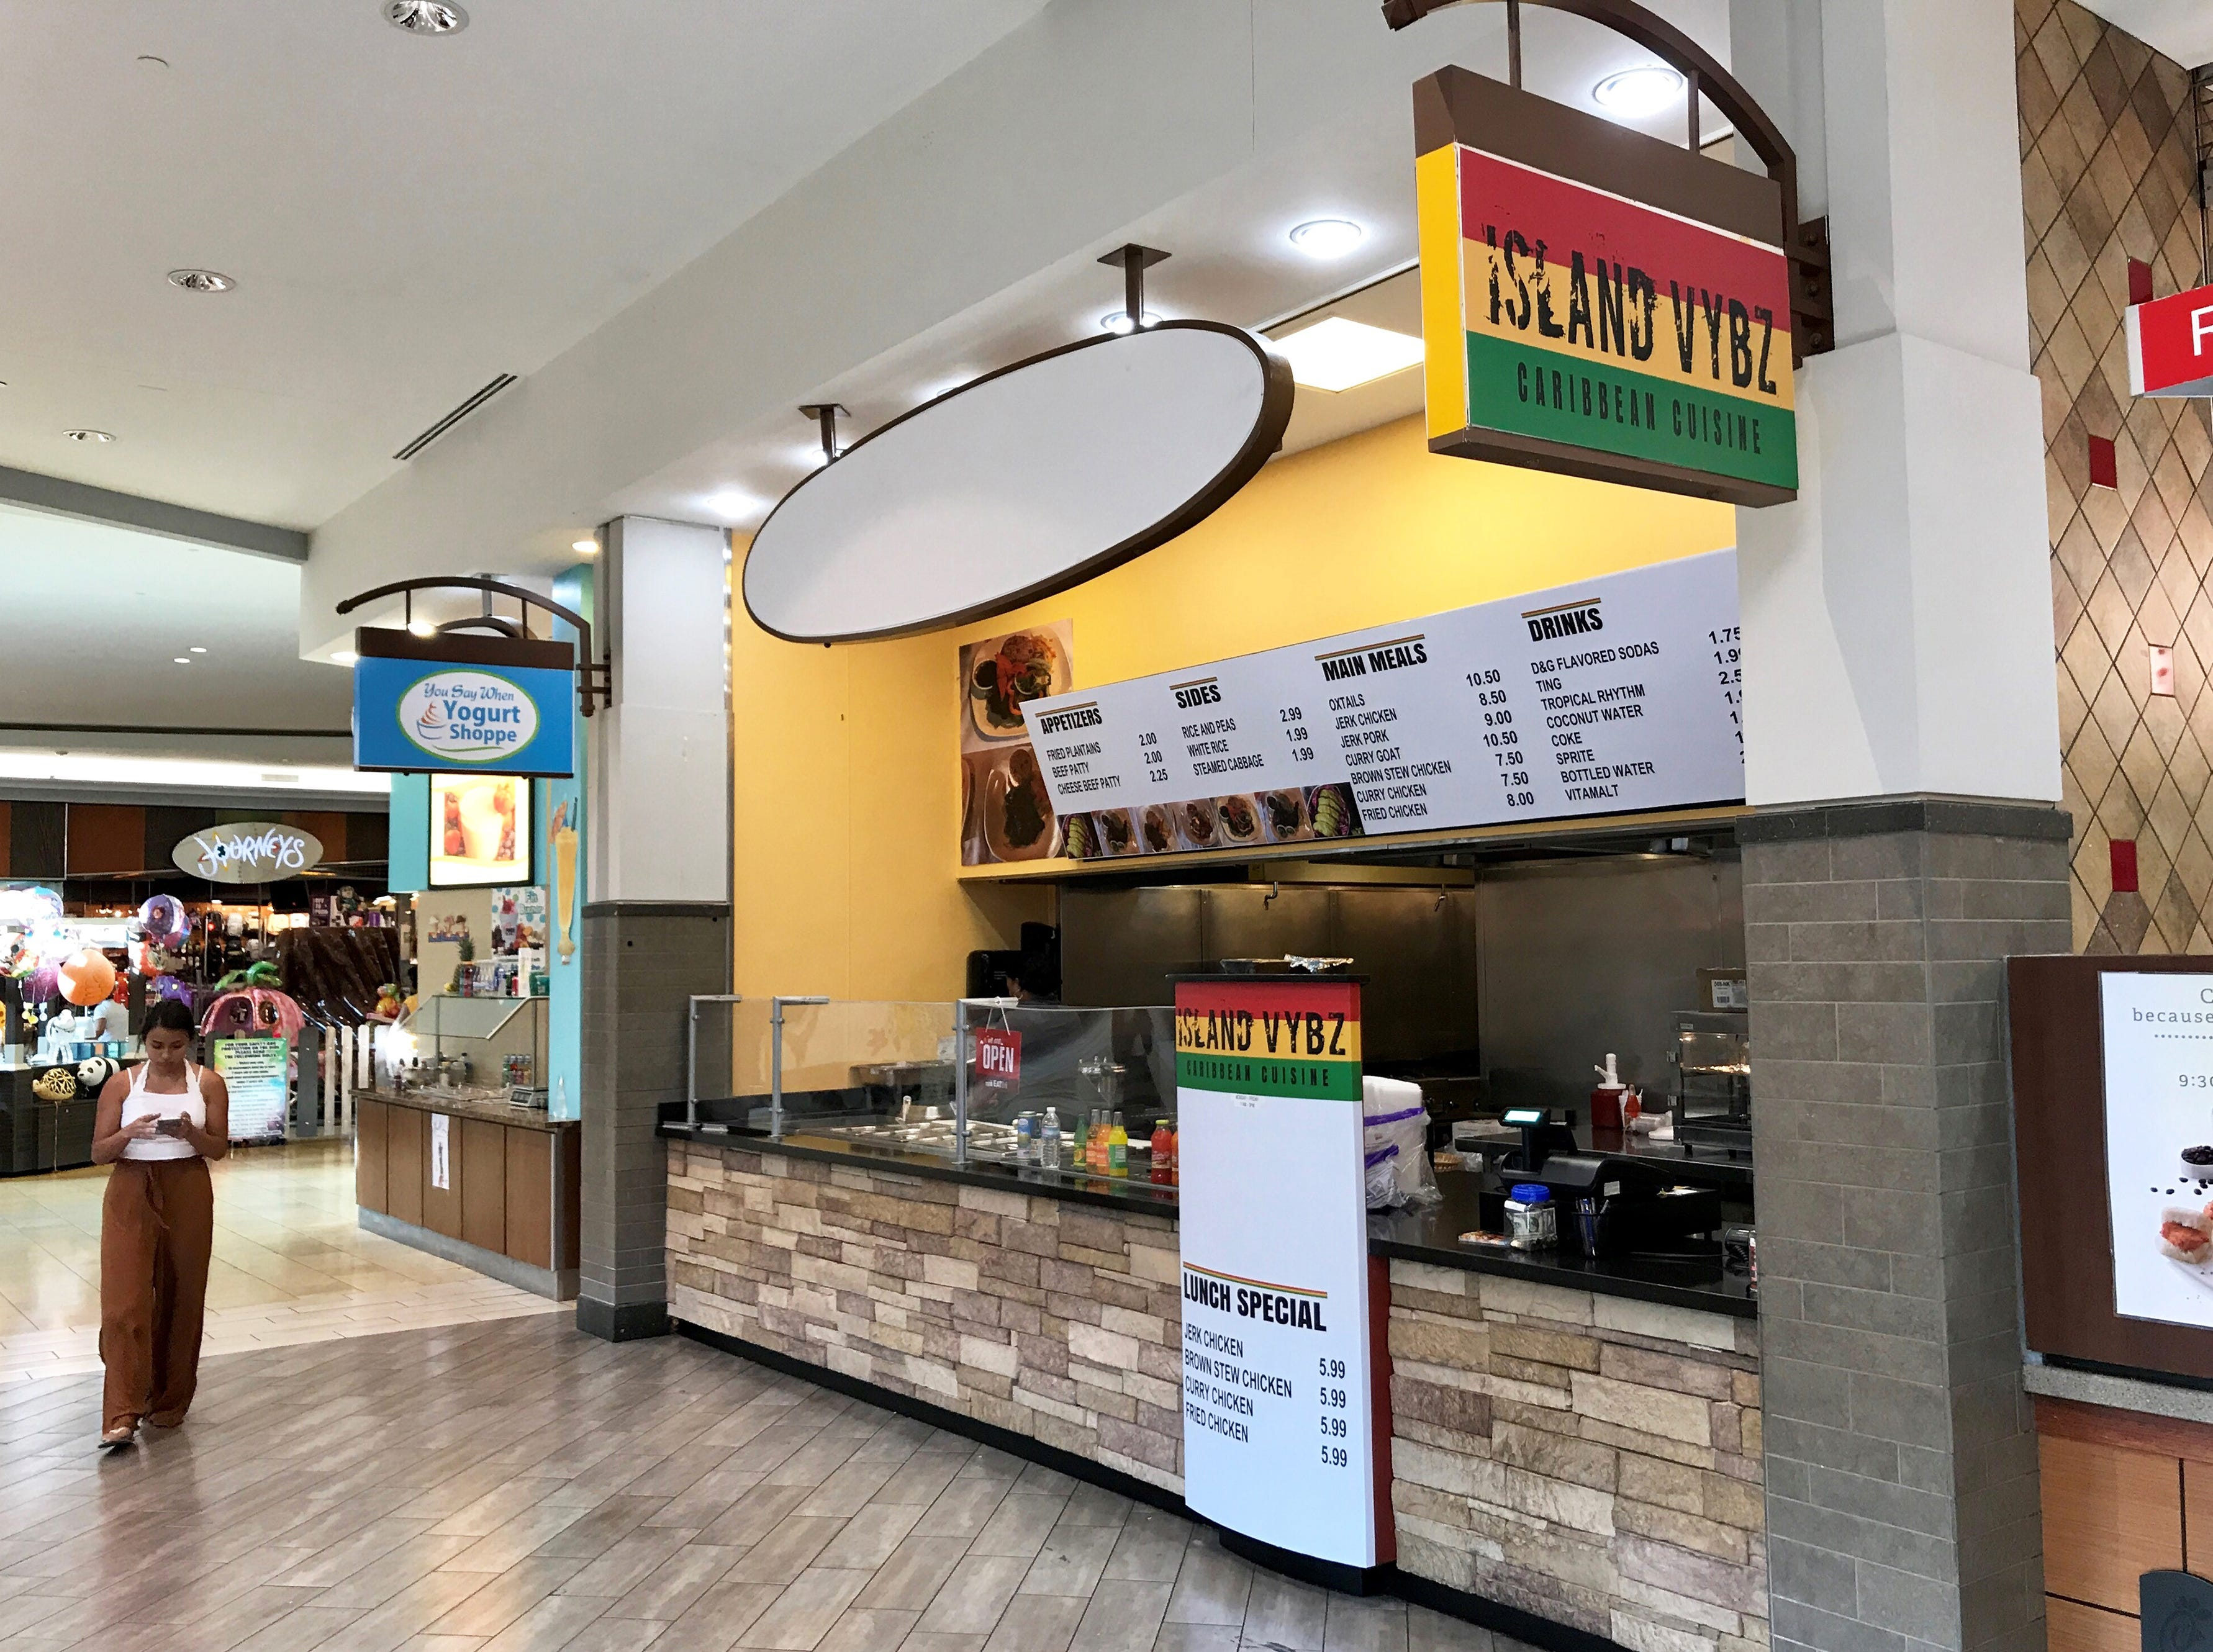 Island Vybz Caribbean Cuisine opened in April 2018 next to Chick-fil-A in the food court at Coastland Center mall in Naples.